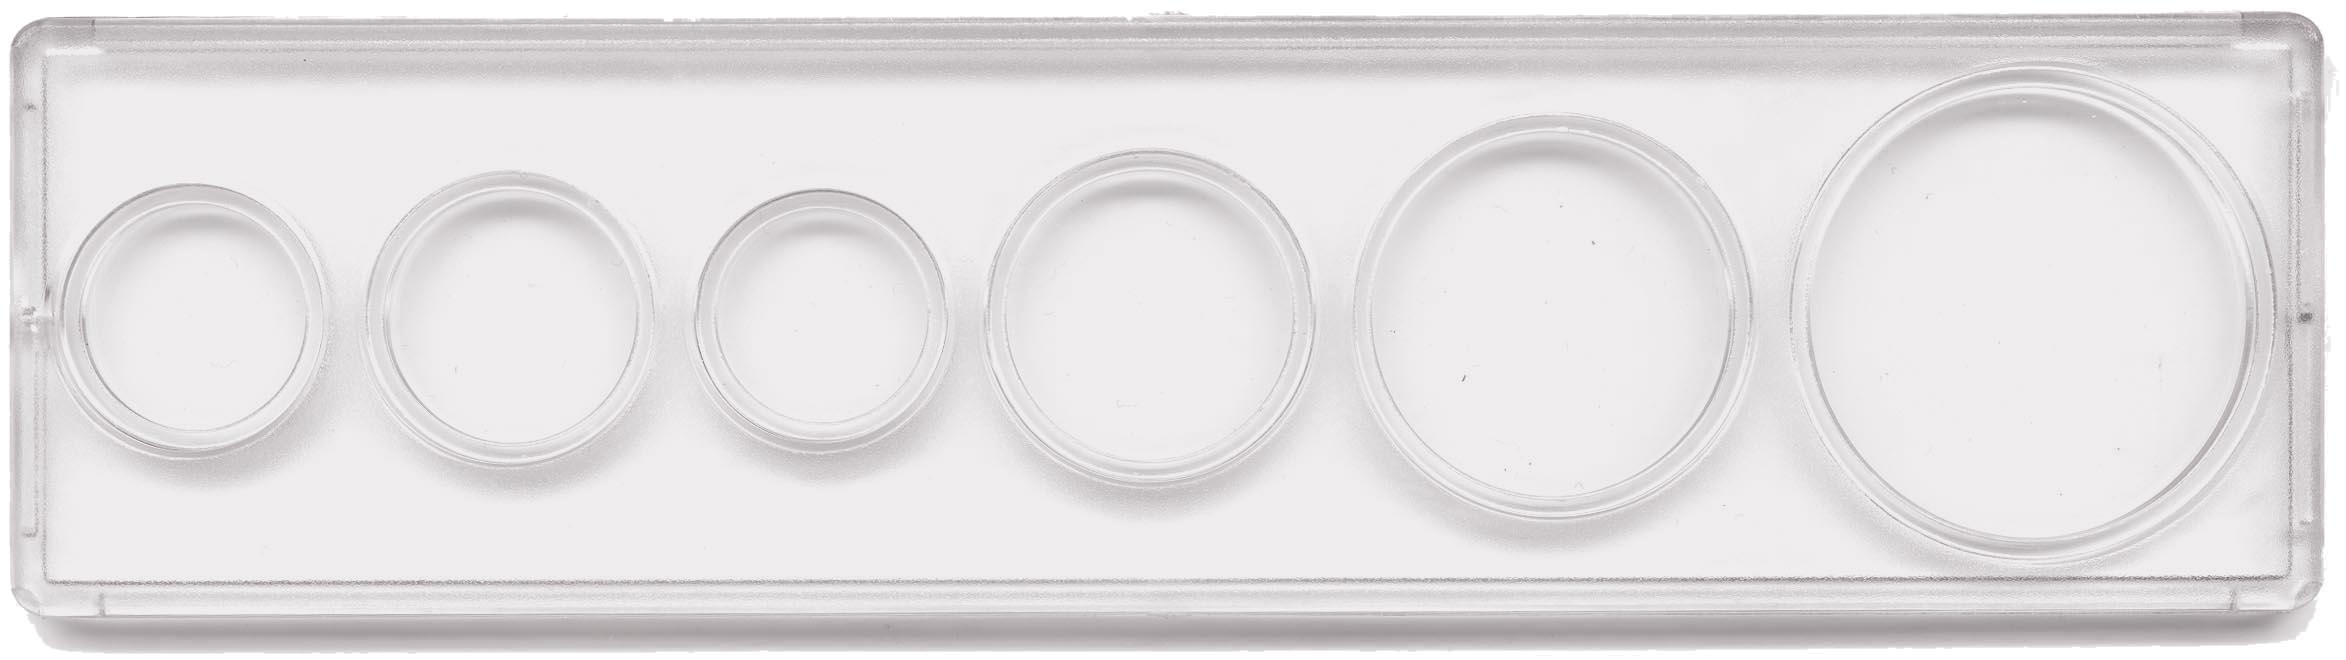 Edgar Marcus & Co Snap-Tite Coin Set Holder - Cent through Large Dollar, 6-hole